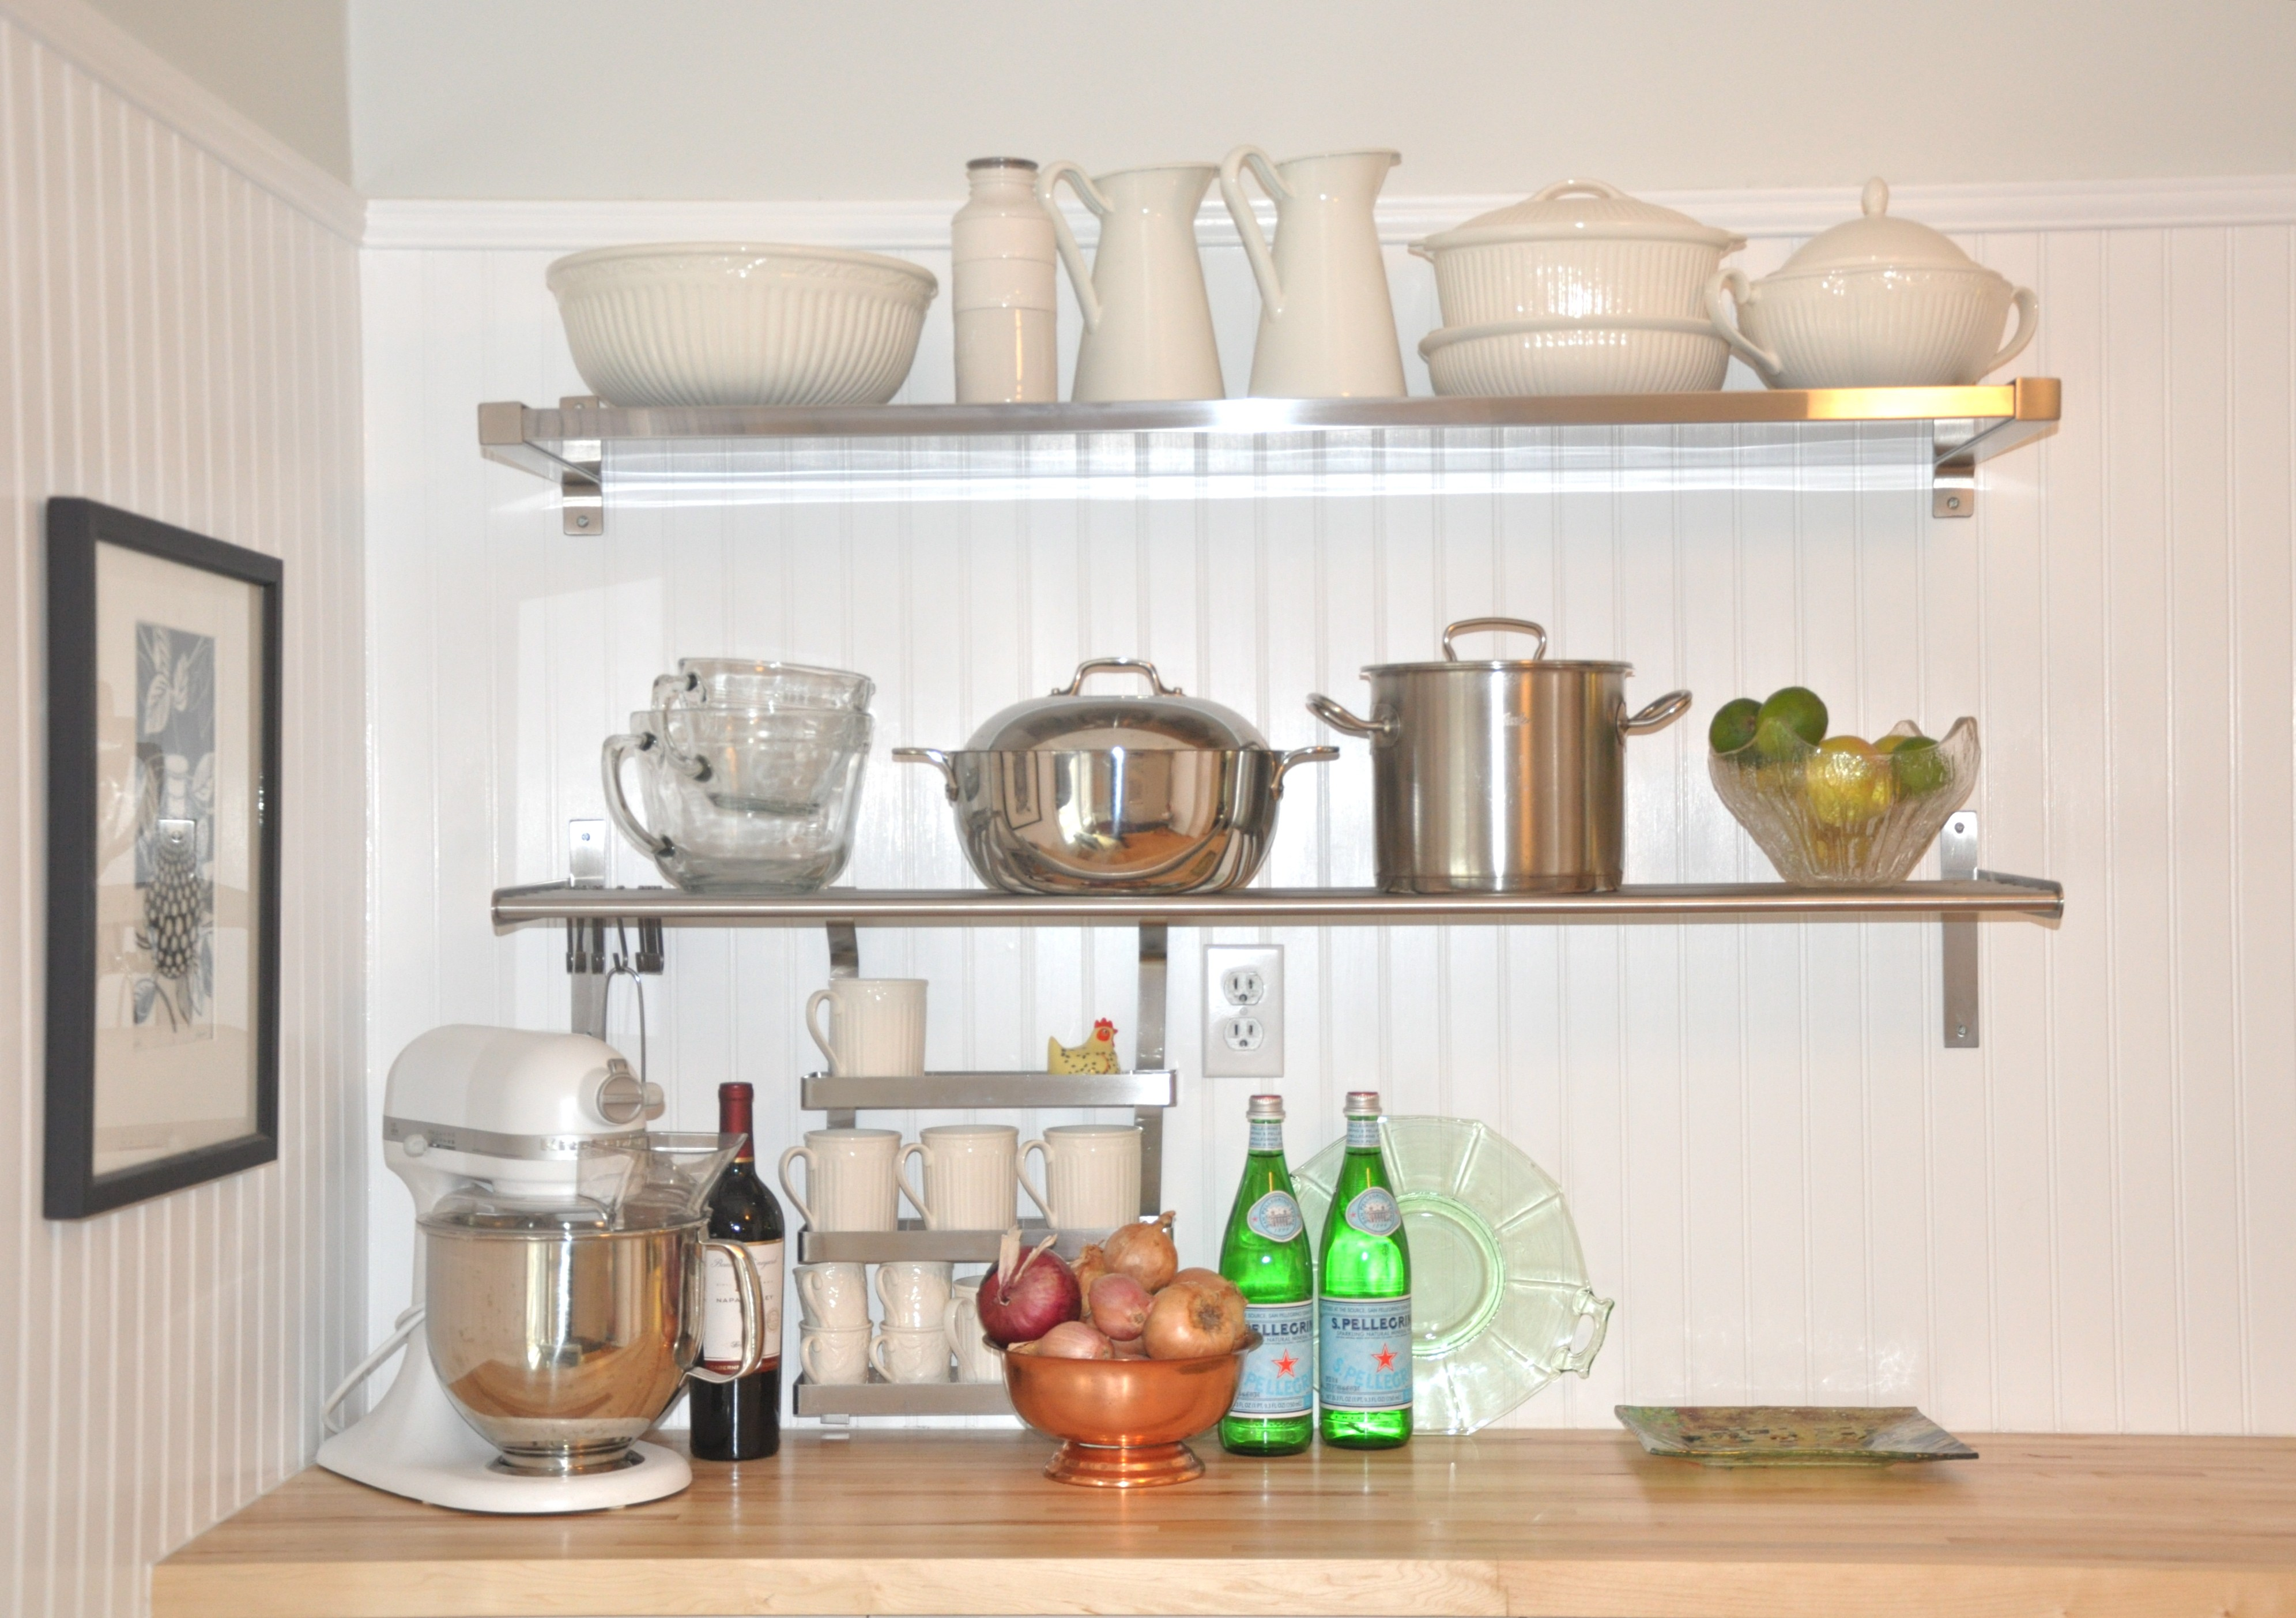 Stainless Steel Floating Shelf Style Meets Function